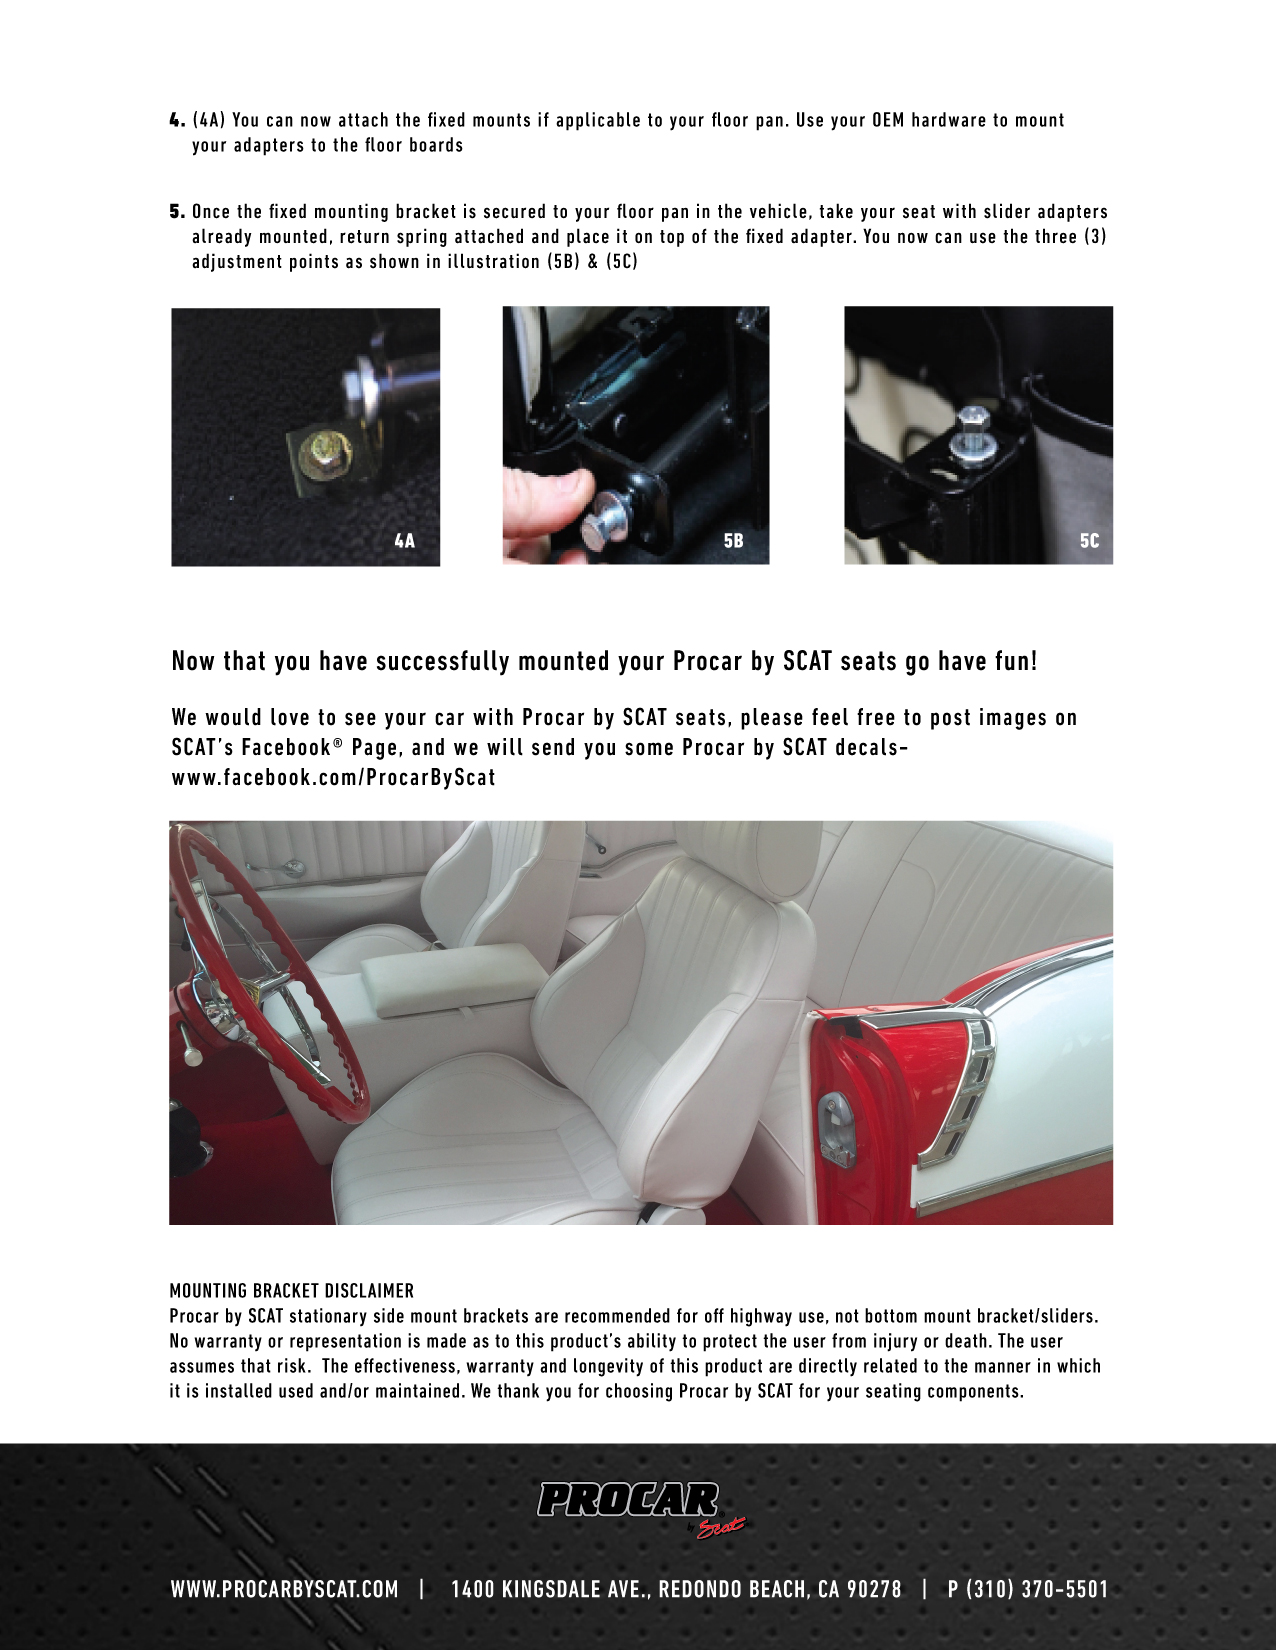 Procar by SCAT Seat Installation Instructions | Procar by SCAT